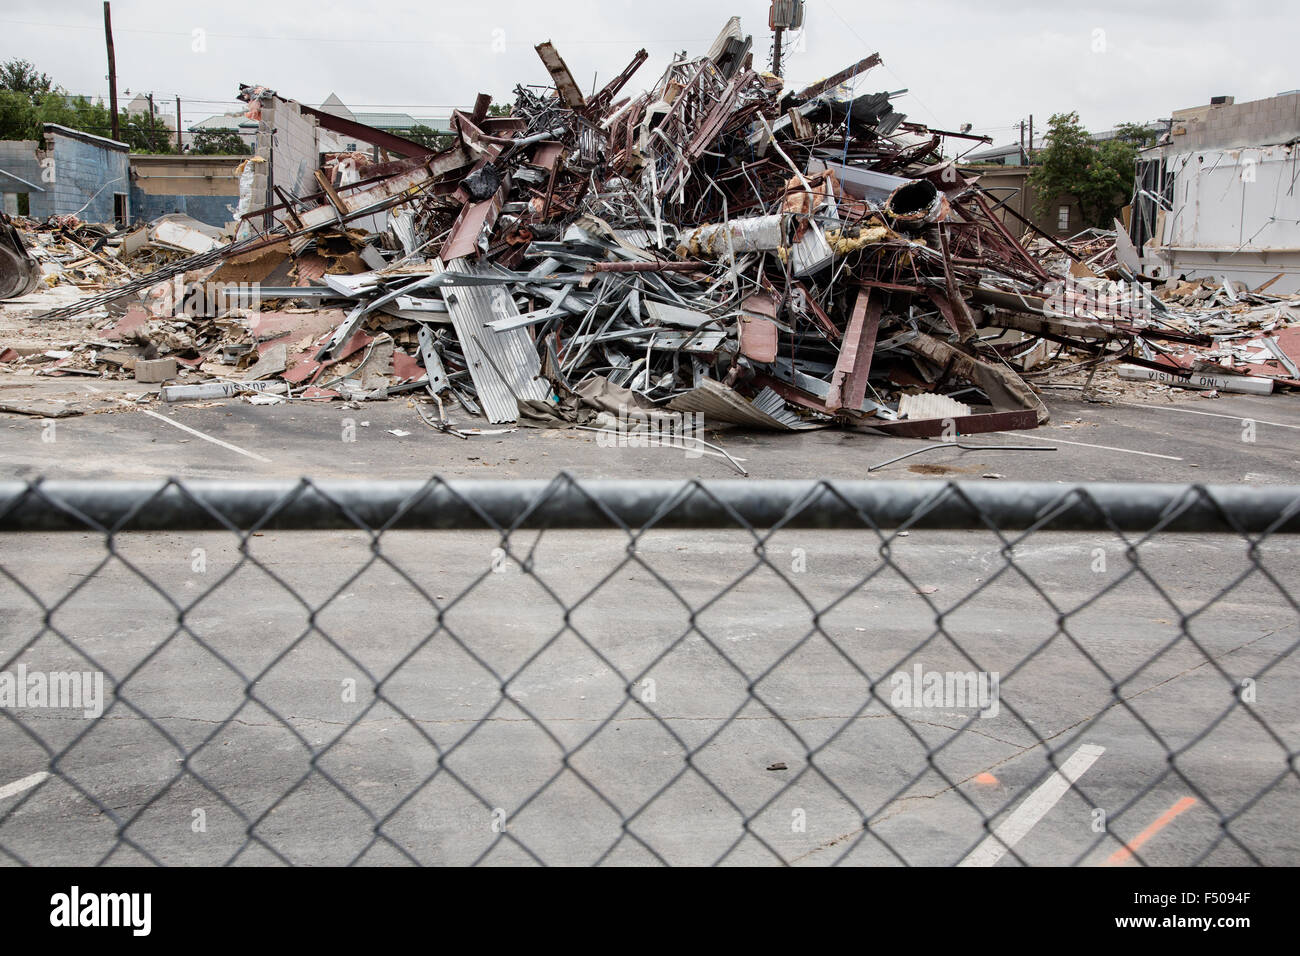 The rubble of a demolished building behind a chain link fence - Stock Image